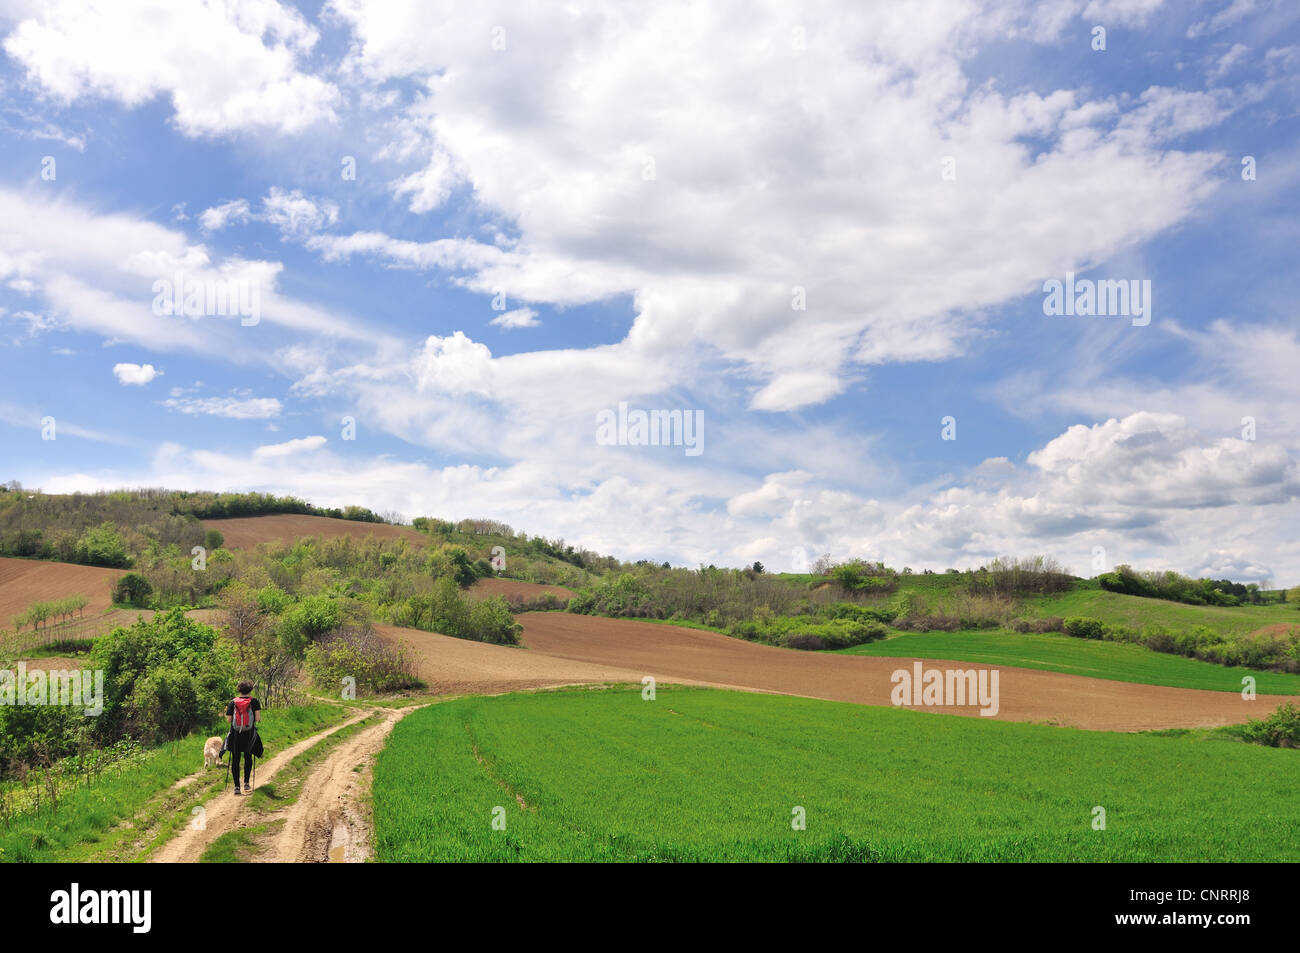 Young woman hiker with dog in countryside landscape Stock Photo